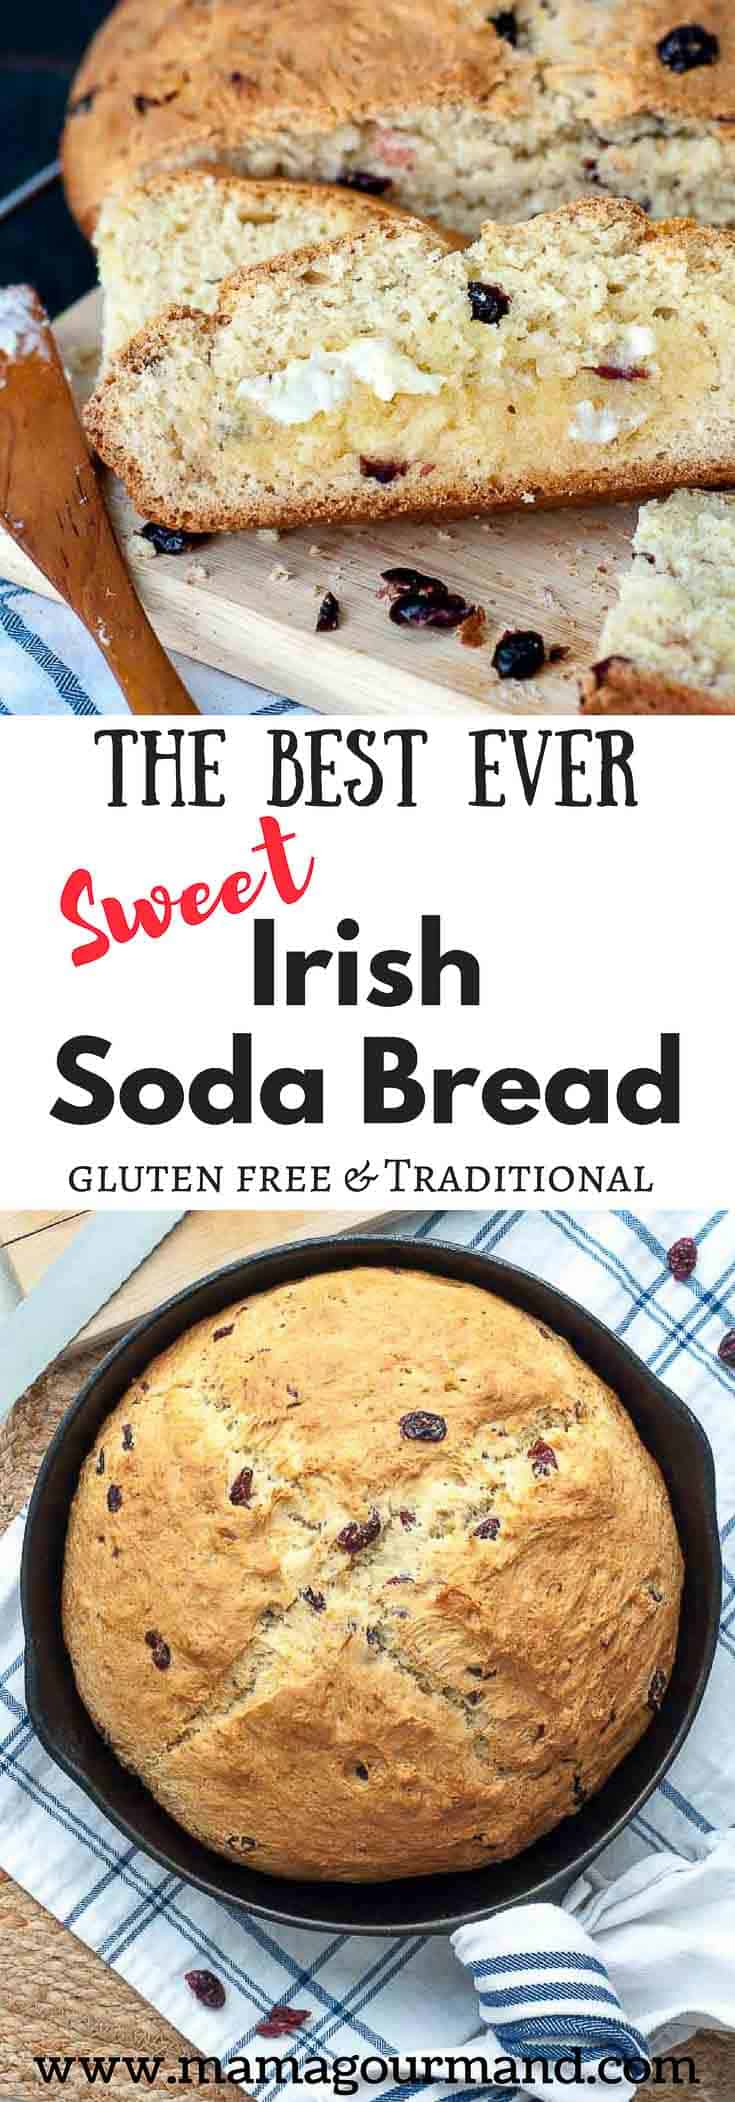 Best Ever Irish Soda Bread recipe is an absolute perfected version! It has a golden, crunchy, sweet crust with a moist, chewy interior, and tangy cranberries. #irishsodabread #sodabread #glutenfreebread #stpatricksdaymeal #stpatricksday https://www.mamagourmand.com